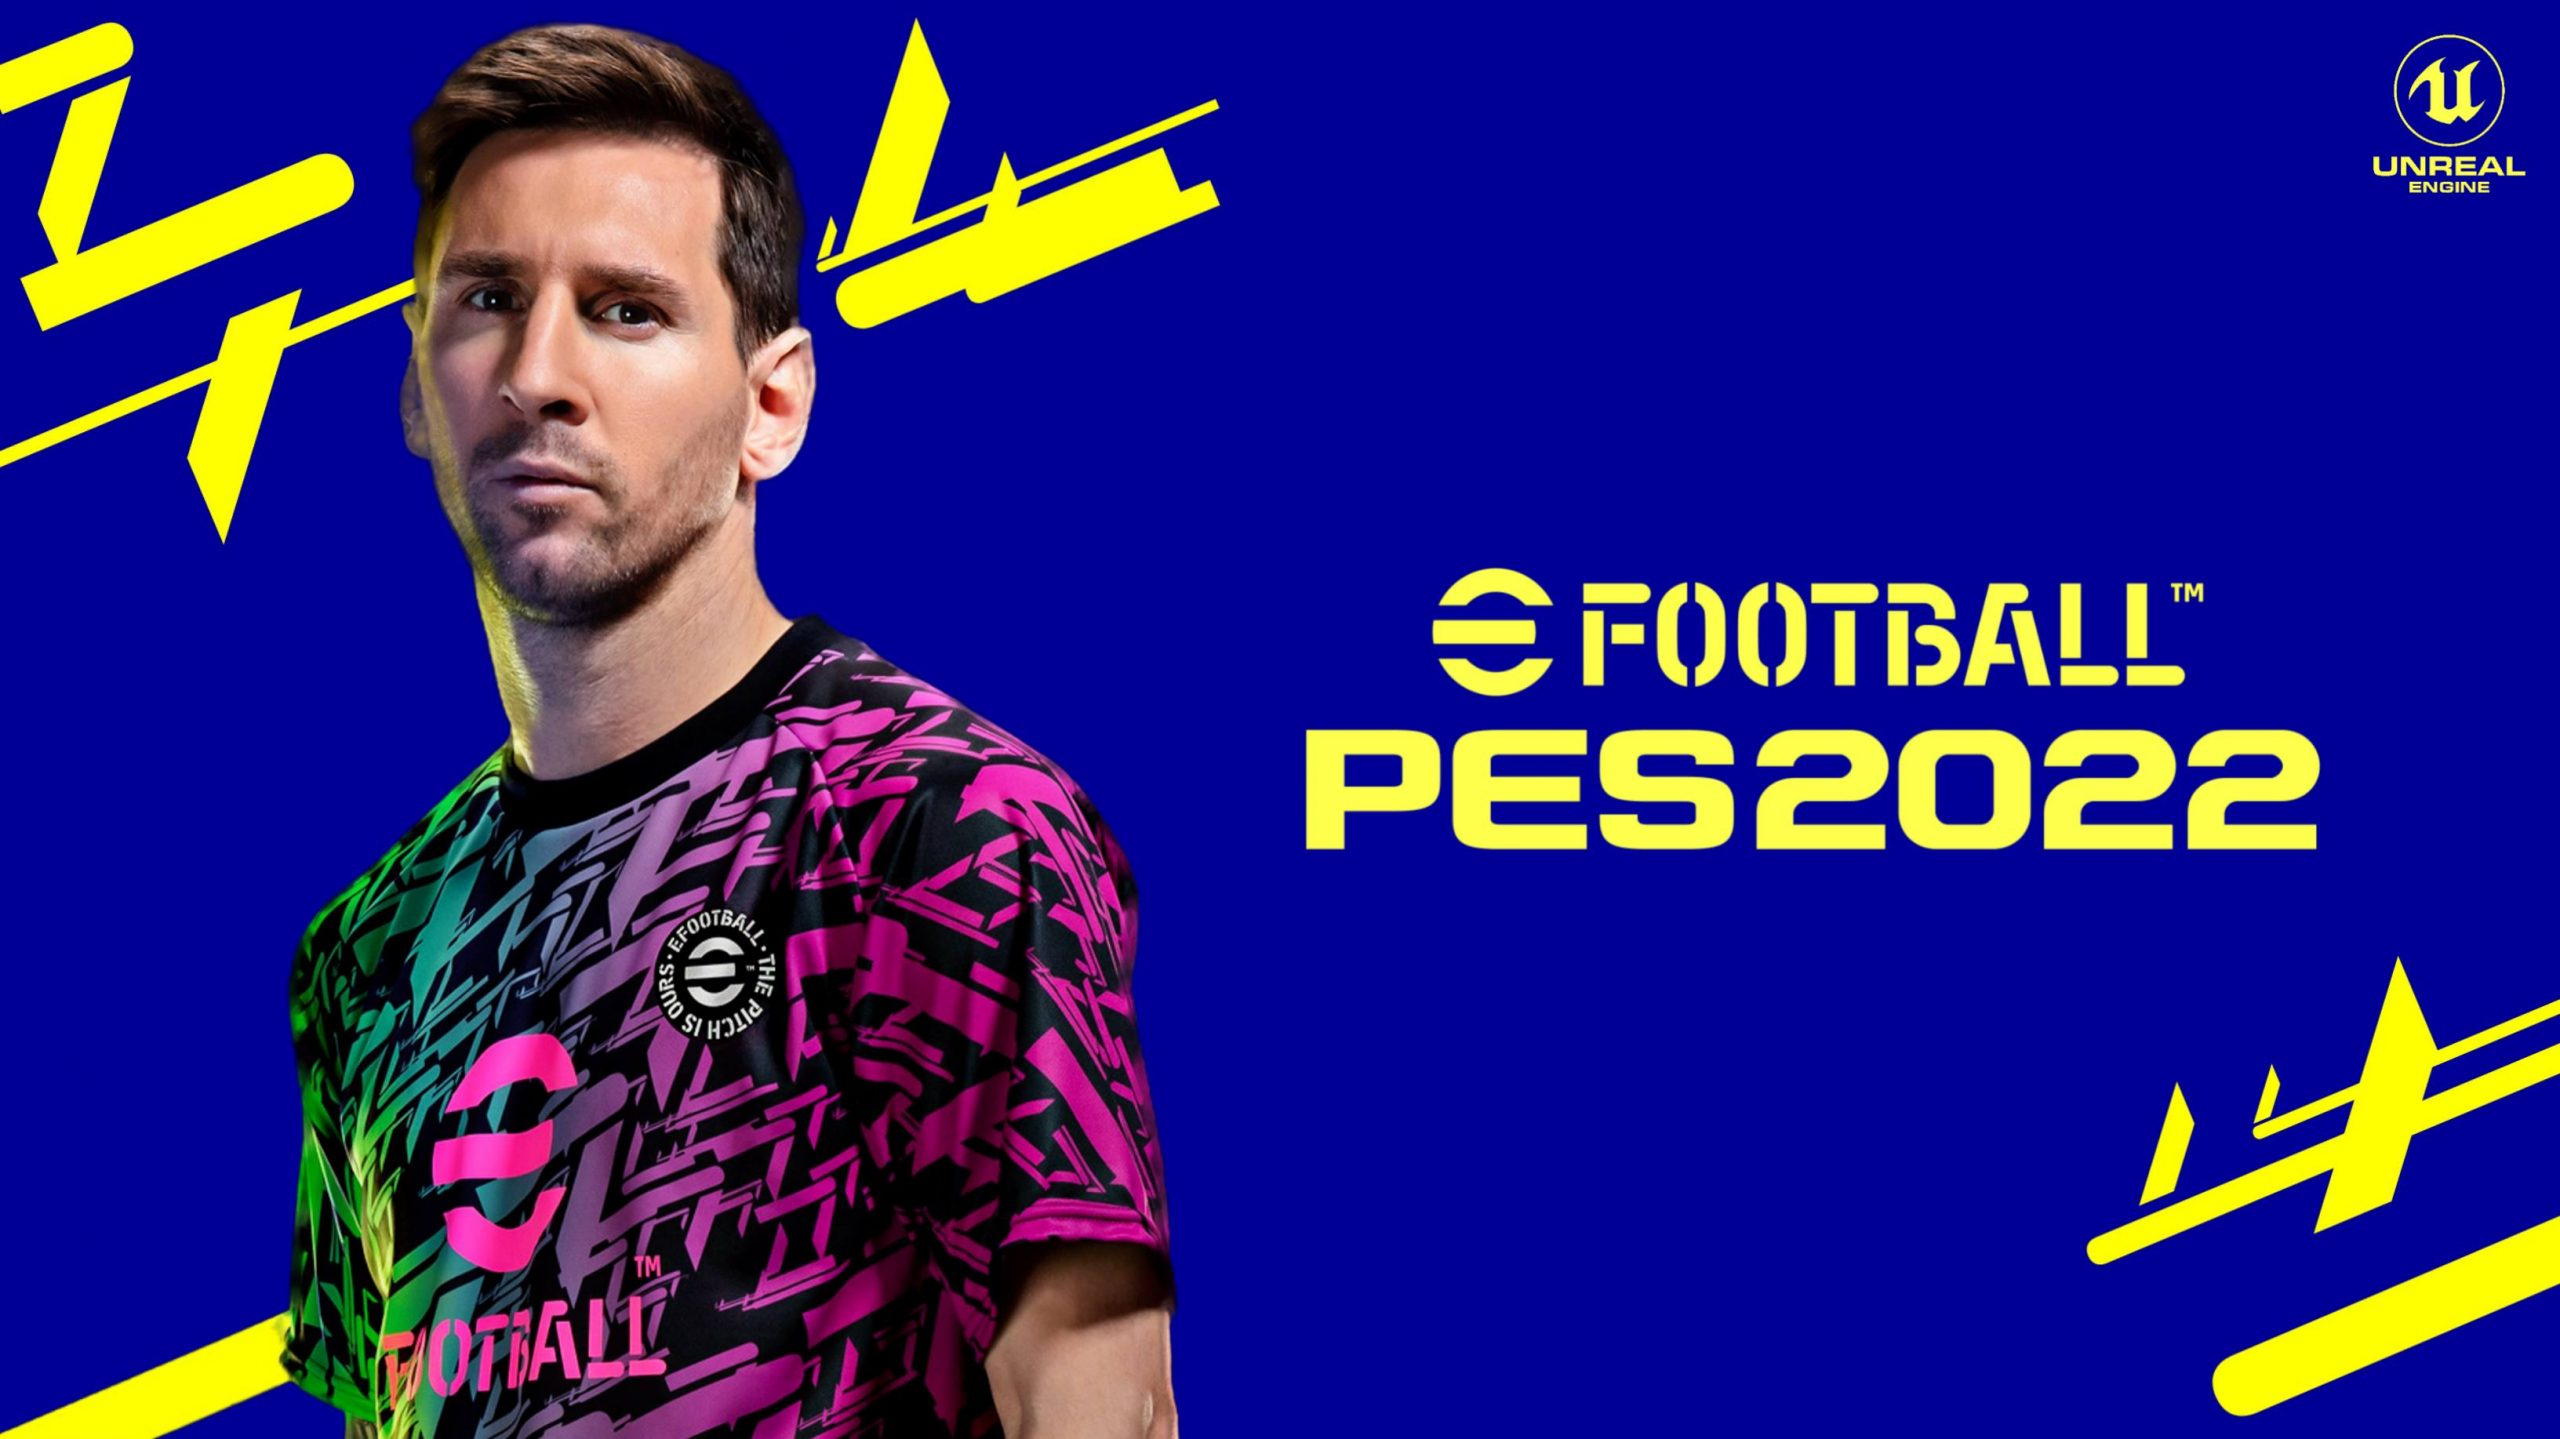 Download eFootball PES 2022 Apk for Android Mobile